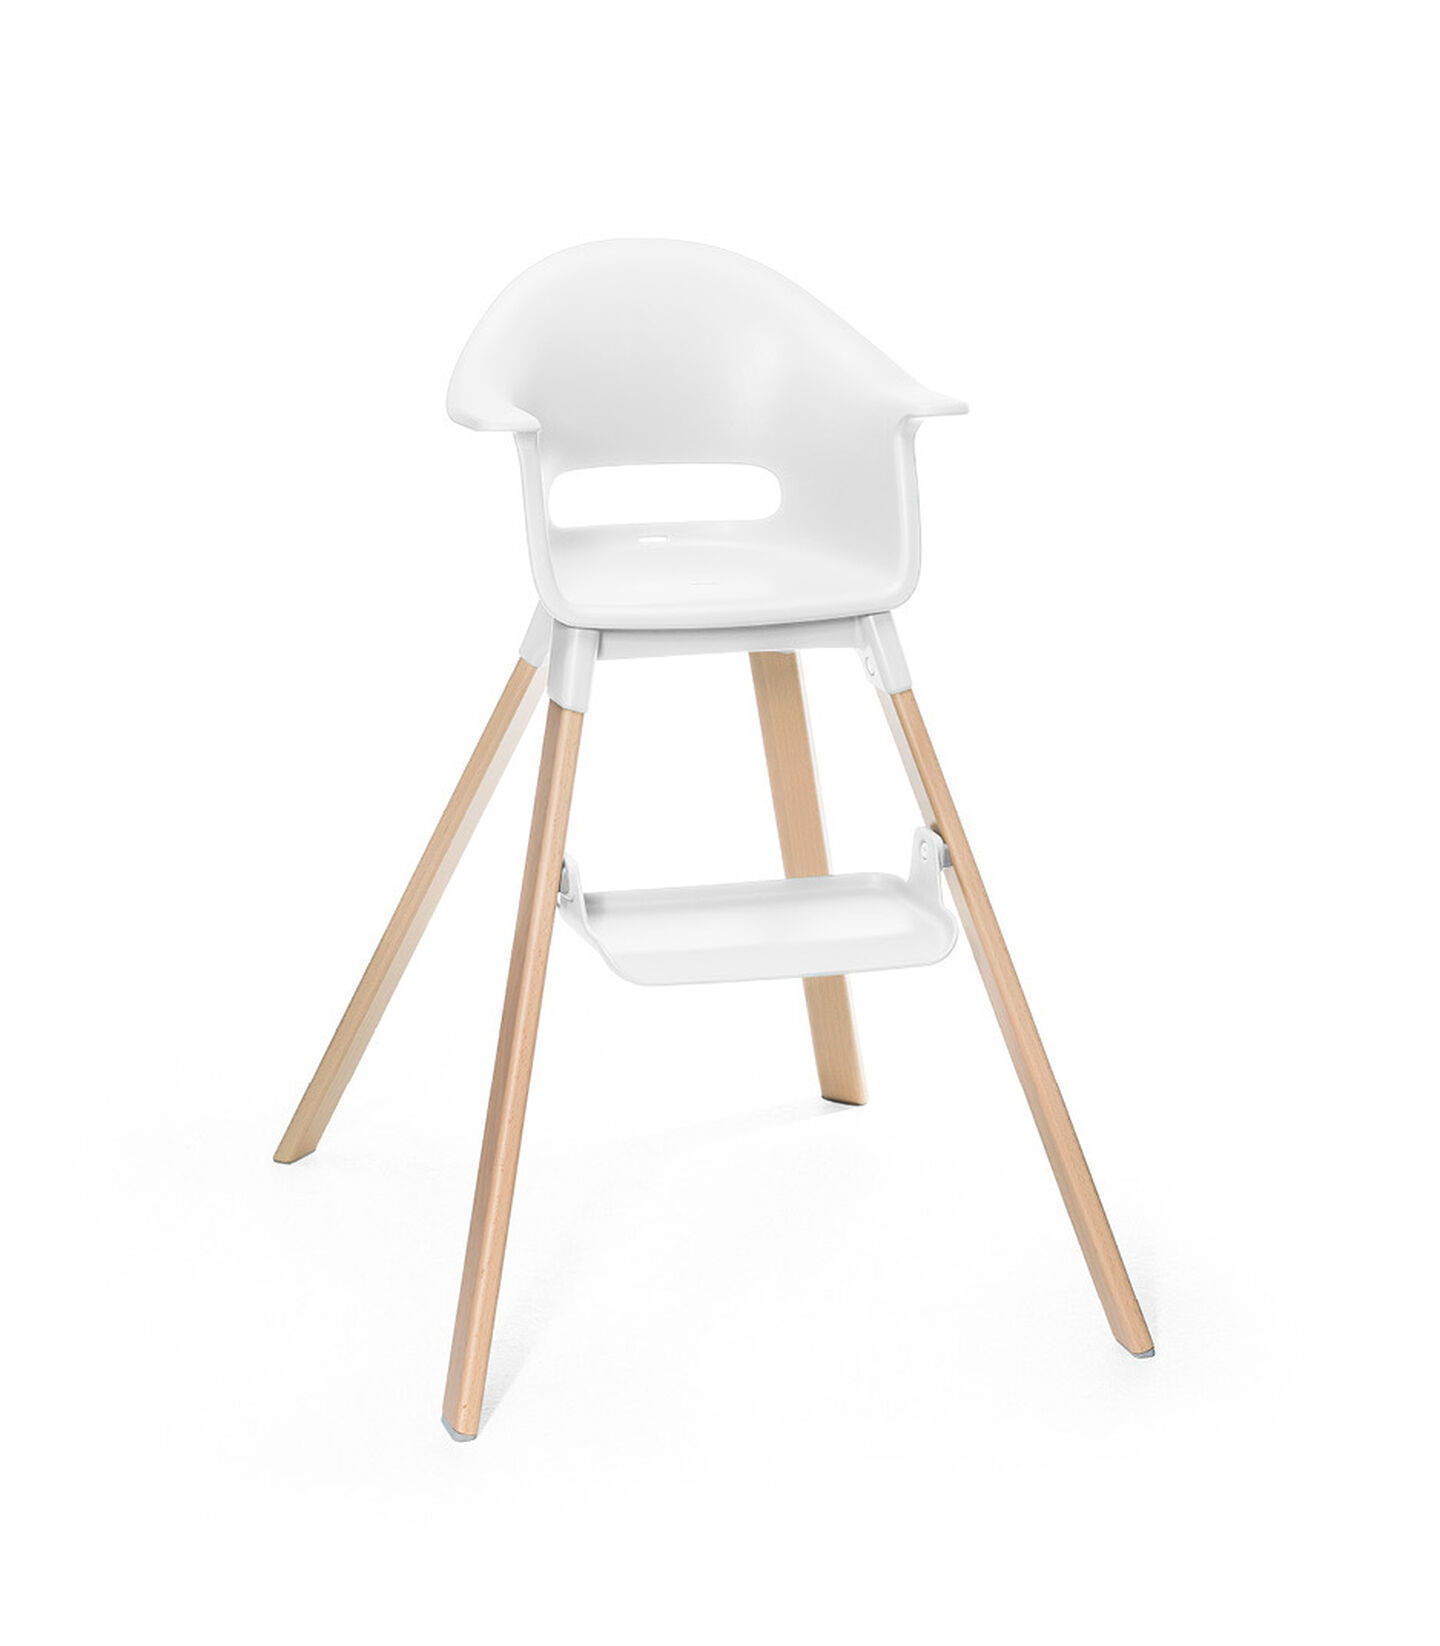 Stokke® Clikk™ High Chair. Natural Beech wood and White plastic parts.